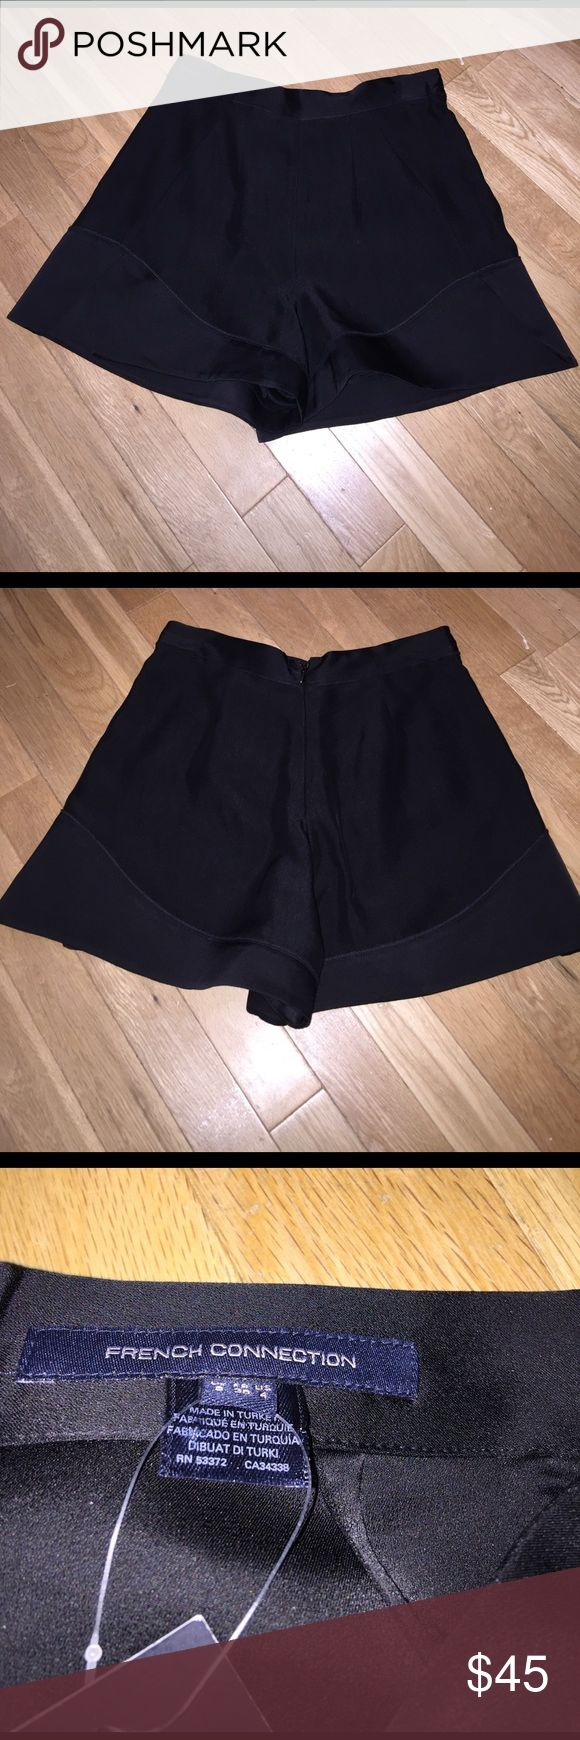 NWT French Connection shorts Really cute! Women's brand new with tag. Never worn French Connection shorts. Size 4. Open to offers. Color black. French Connection Shorts